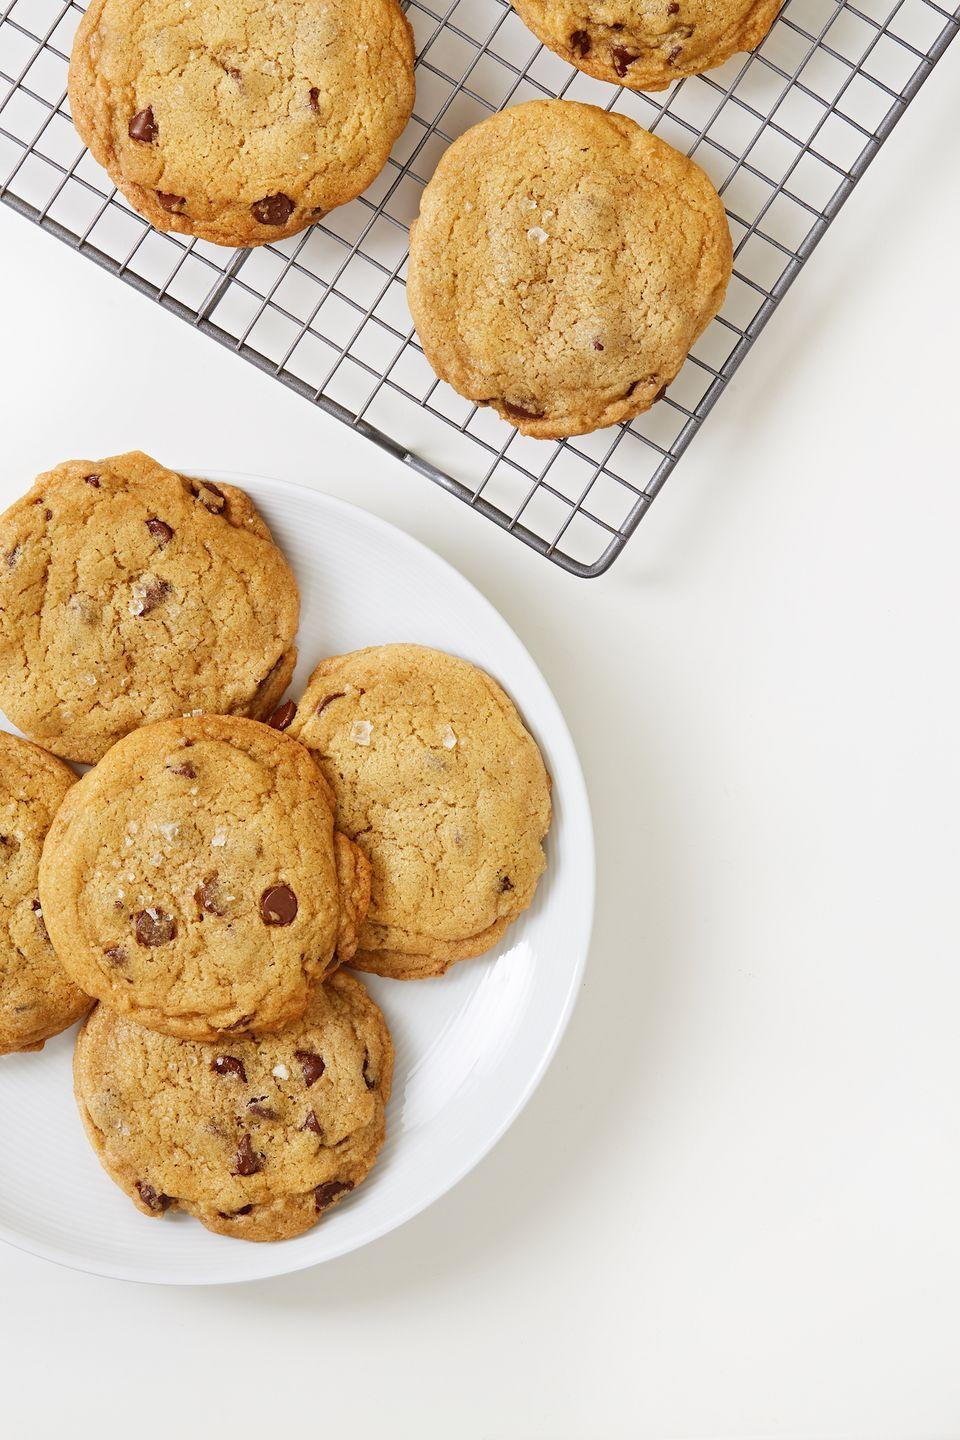 """<p>The idea that <a href=""""https://www.delish.com/cooking/g4807/vegan-desserts/"""" rel=""""nofollow noopener"""" target=""""_blank"""" data-ylk=""""slk:vegan desserts"""" class=""""link rapid-noclick-resp"""">vegan desserts</a> can't be delicious is a total myth. These cookies perfectly chewy inside and a bit crisp on the edges - good enough to prove any nay-sayer wrong.</p><p>Get the recipe from <a href=""""https://www.delish.com/cooking/recipe-ideas/a32687711/vegan-chocolate-chip-cookies/"""" rel=""""nofollow noopener"""" target=""""_blank"""" data-ylk=""""slk:Delish"""" class=""""link rapid-noclick-resp"""">Delish</a>.</p>"""